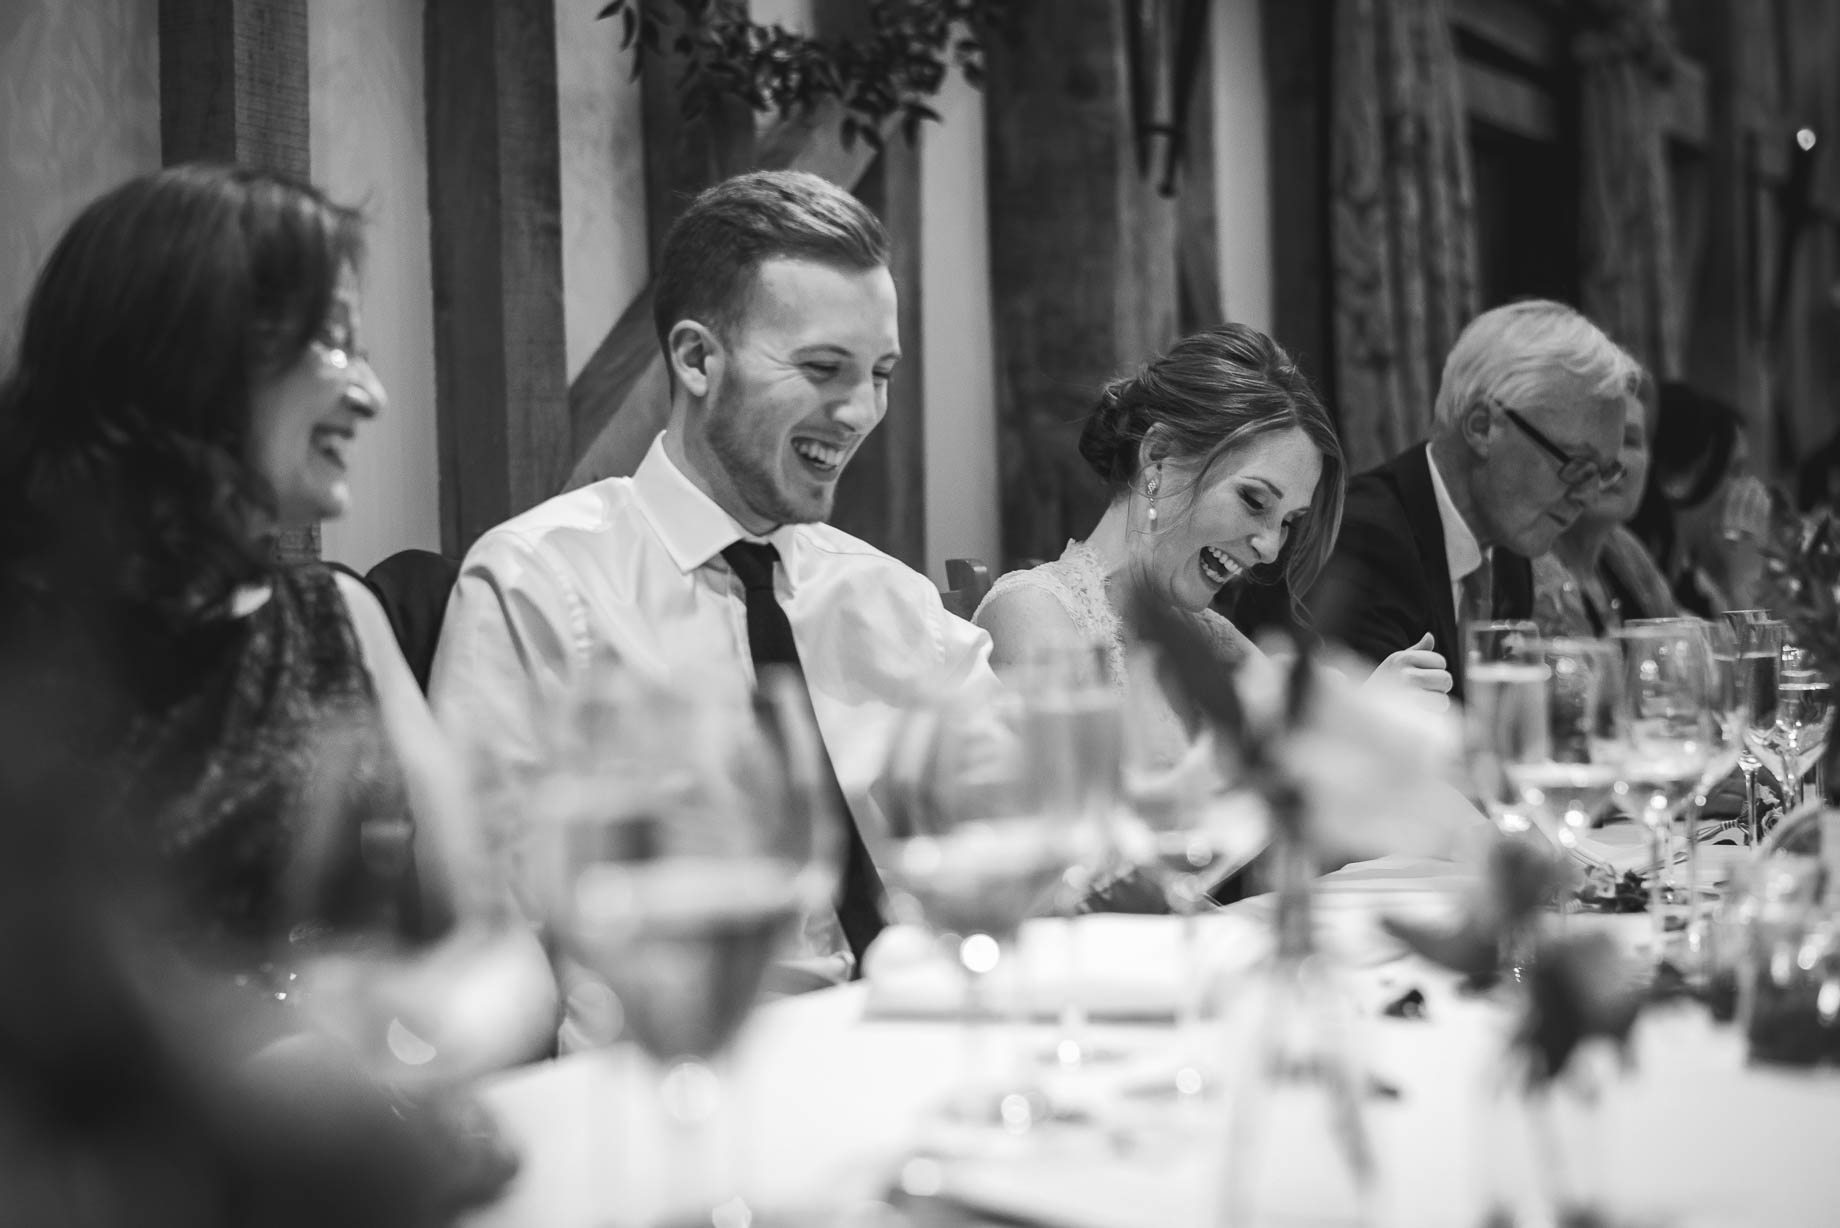 Surrey Wedding Photography by Guy Collier - Becca and James (136 of 145)